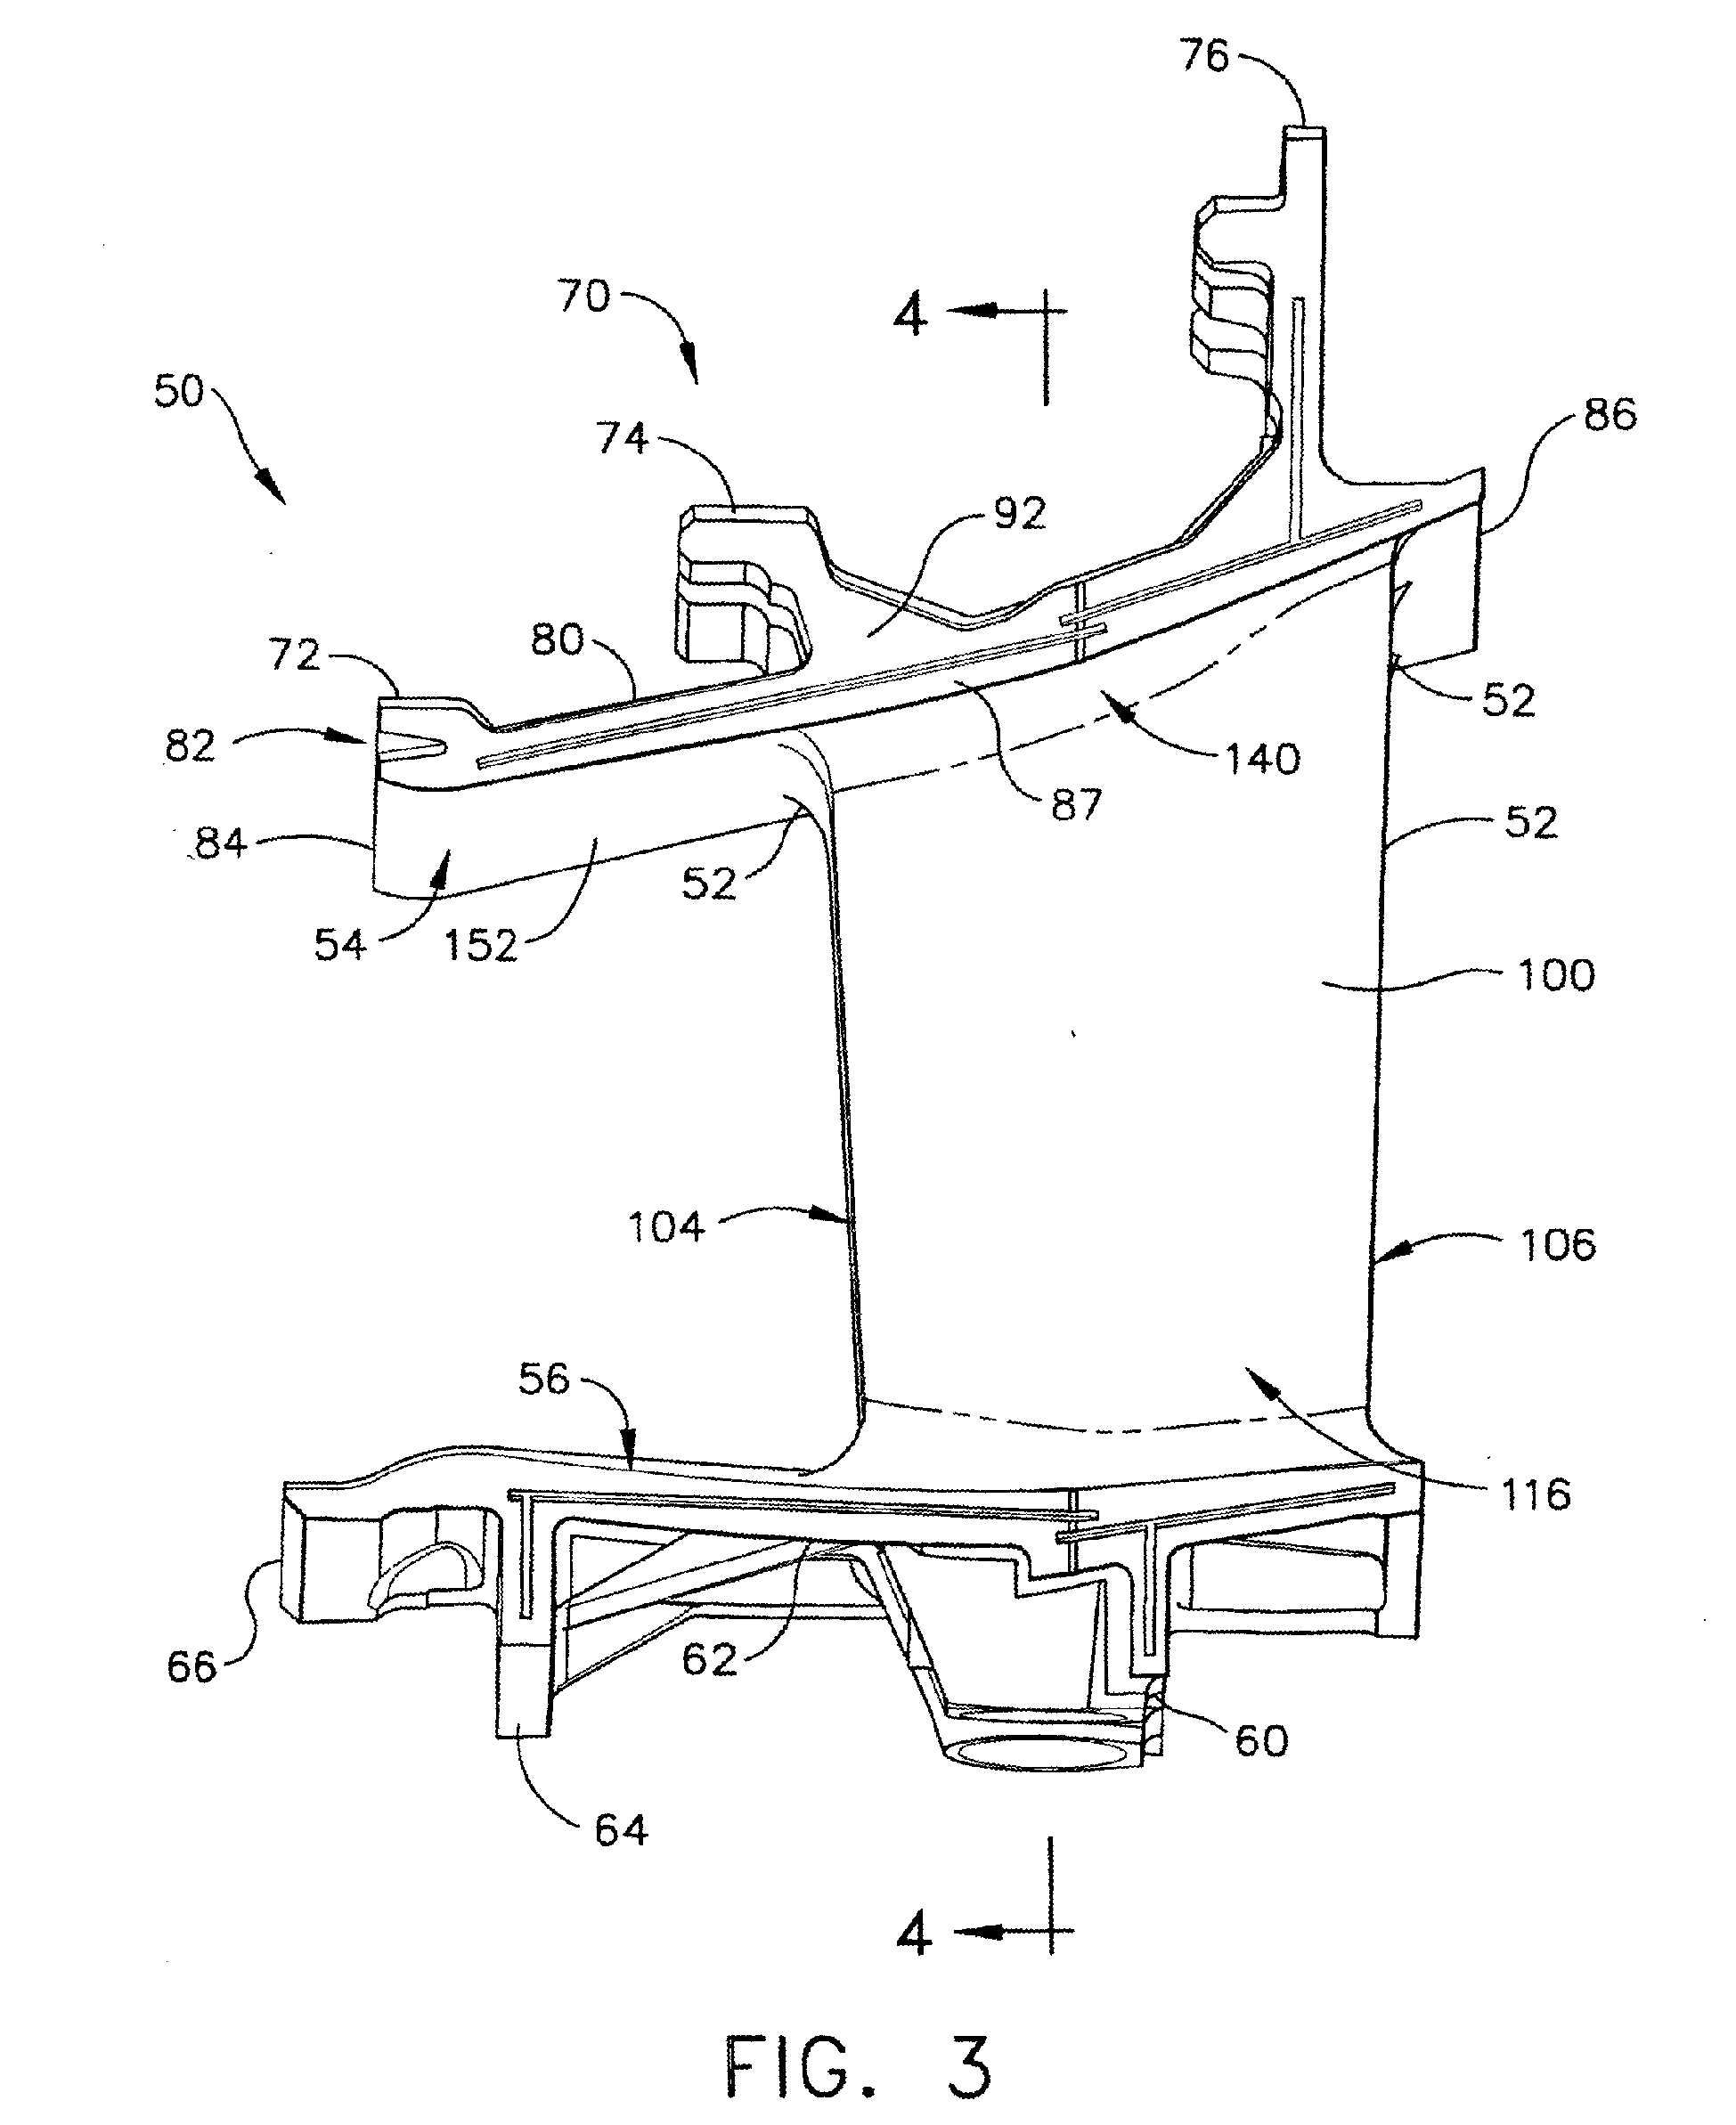 Patent ep b1 gas turbine nozzle and gas turbine engine